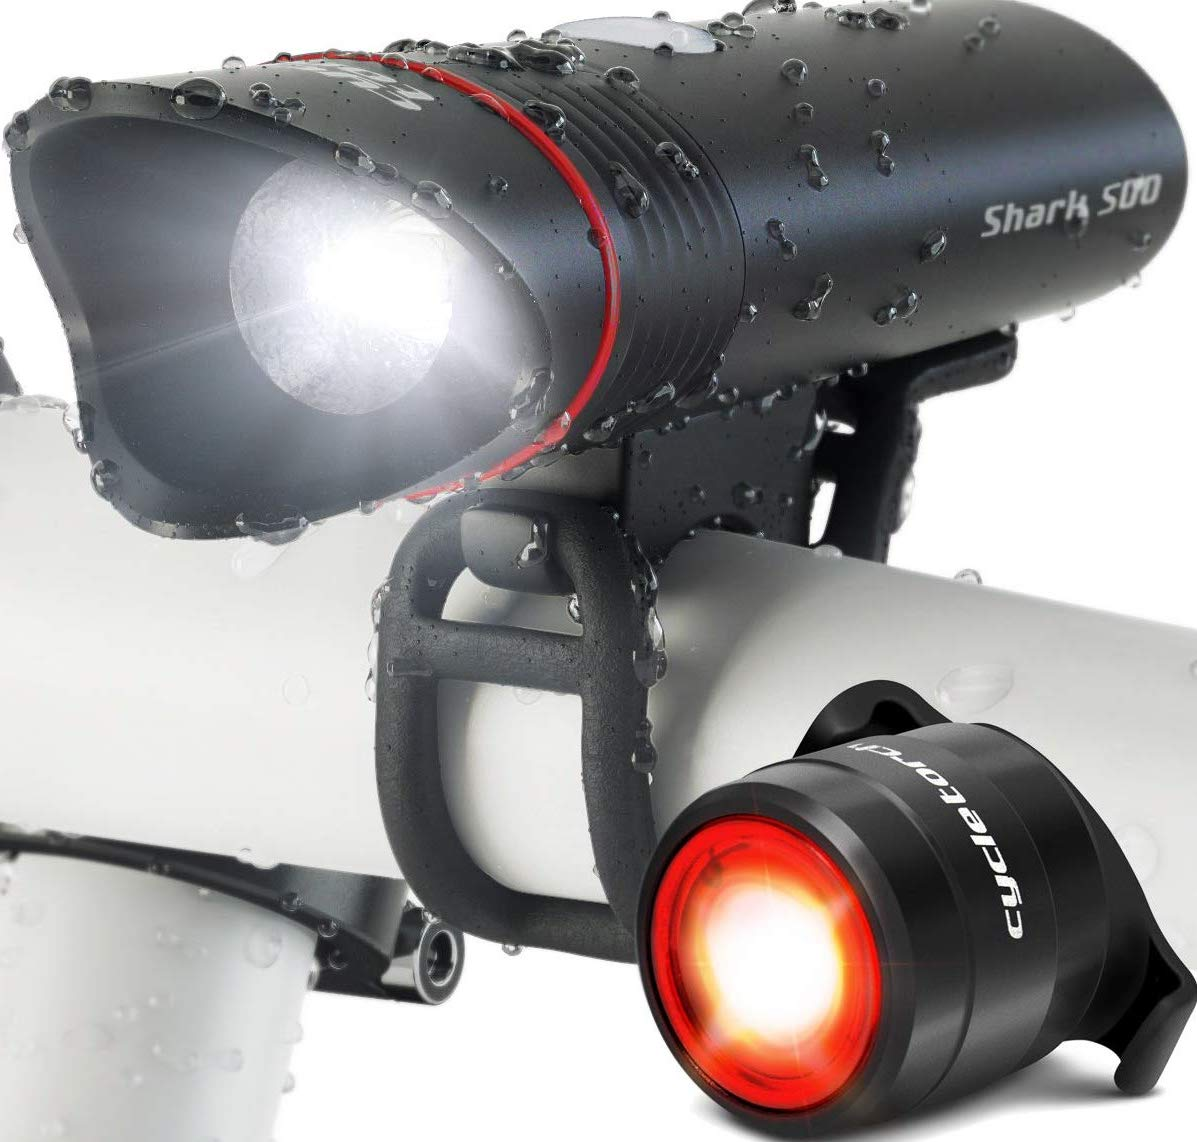 cycle-torch-shark-500-bike-light-render-cropped